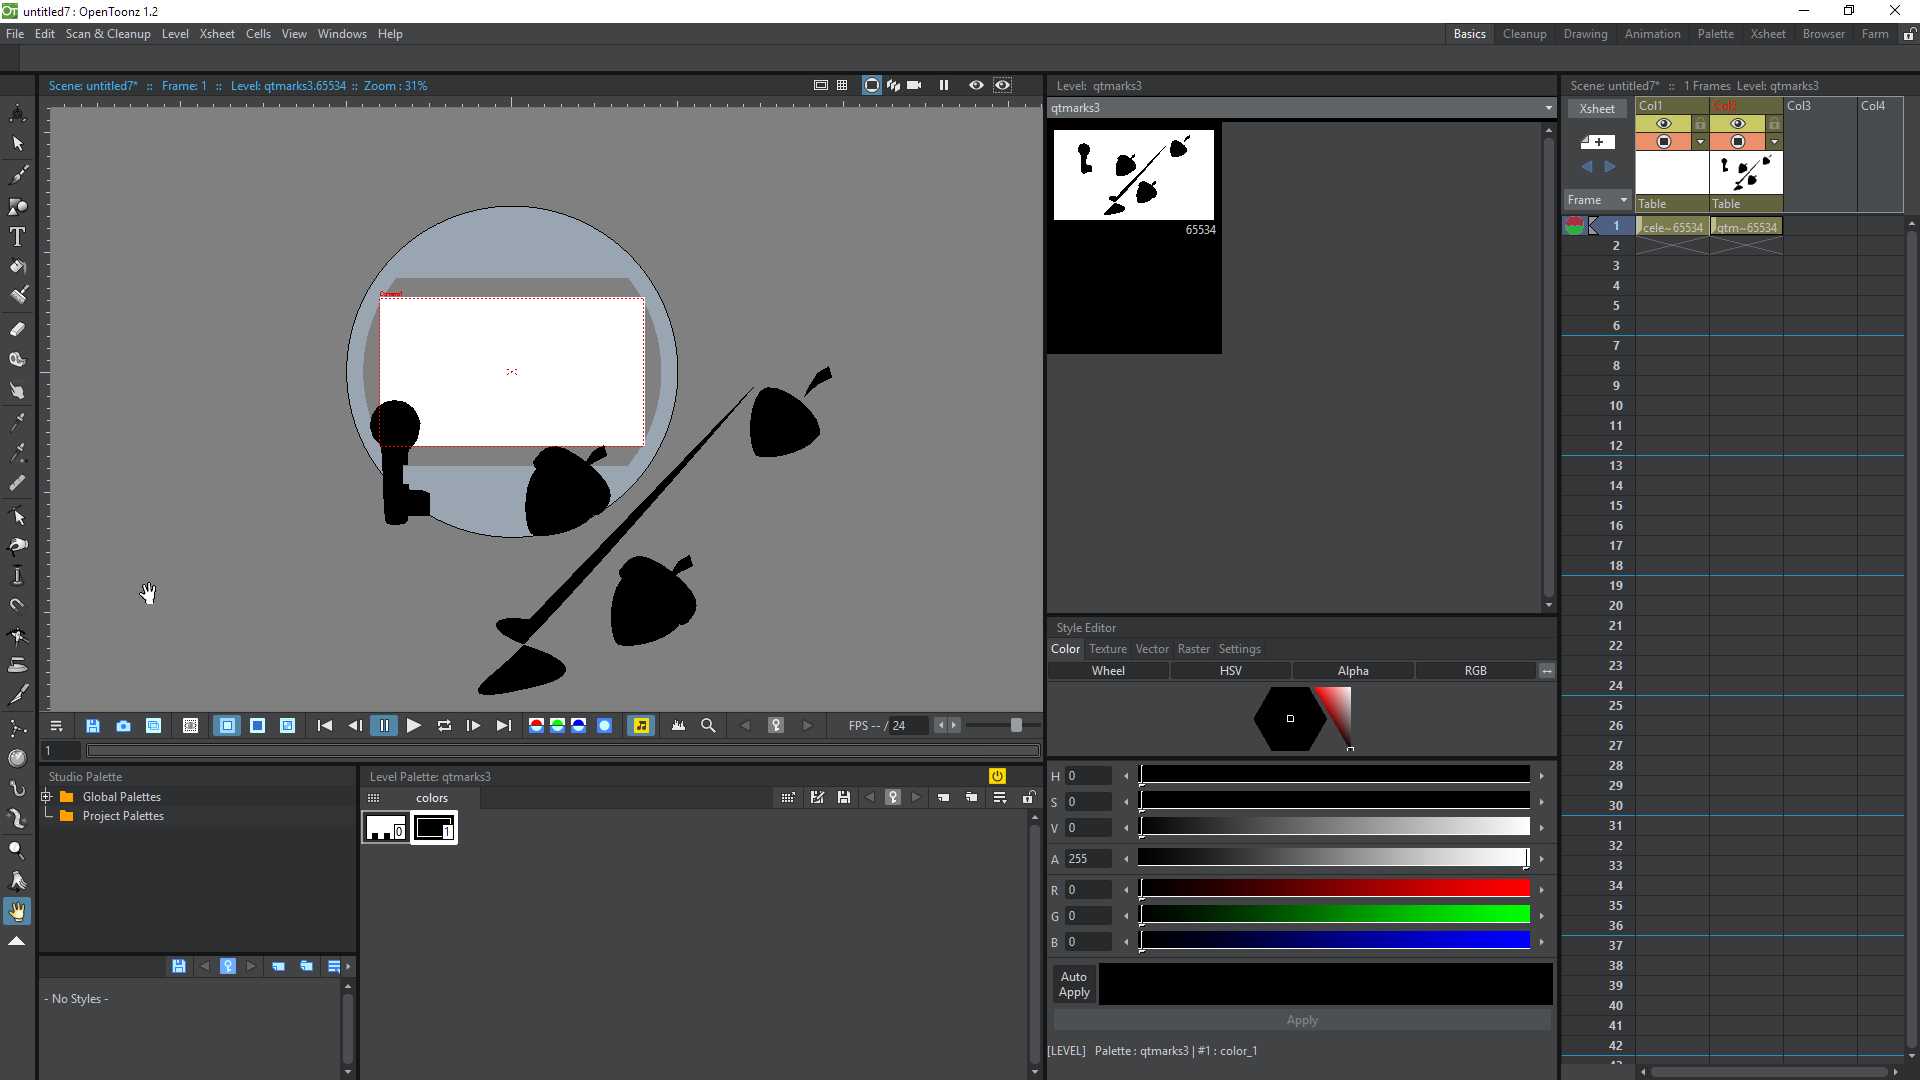 imported  svg files loses colors · Issue #1795 · opentoonz/opentoonz